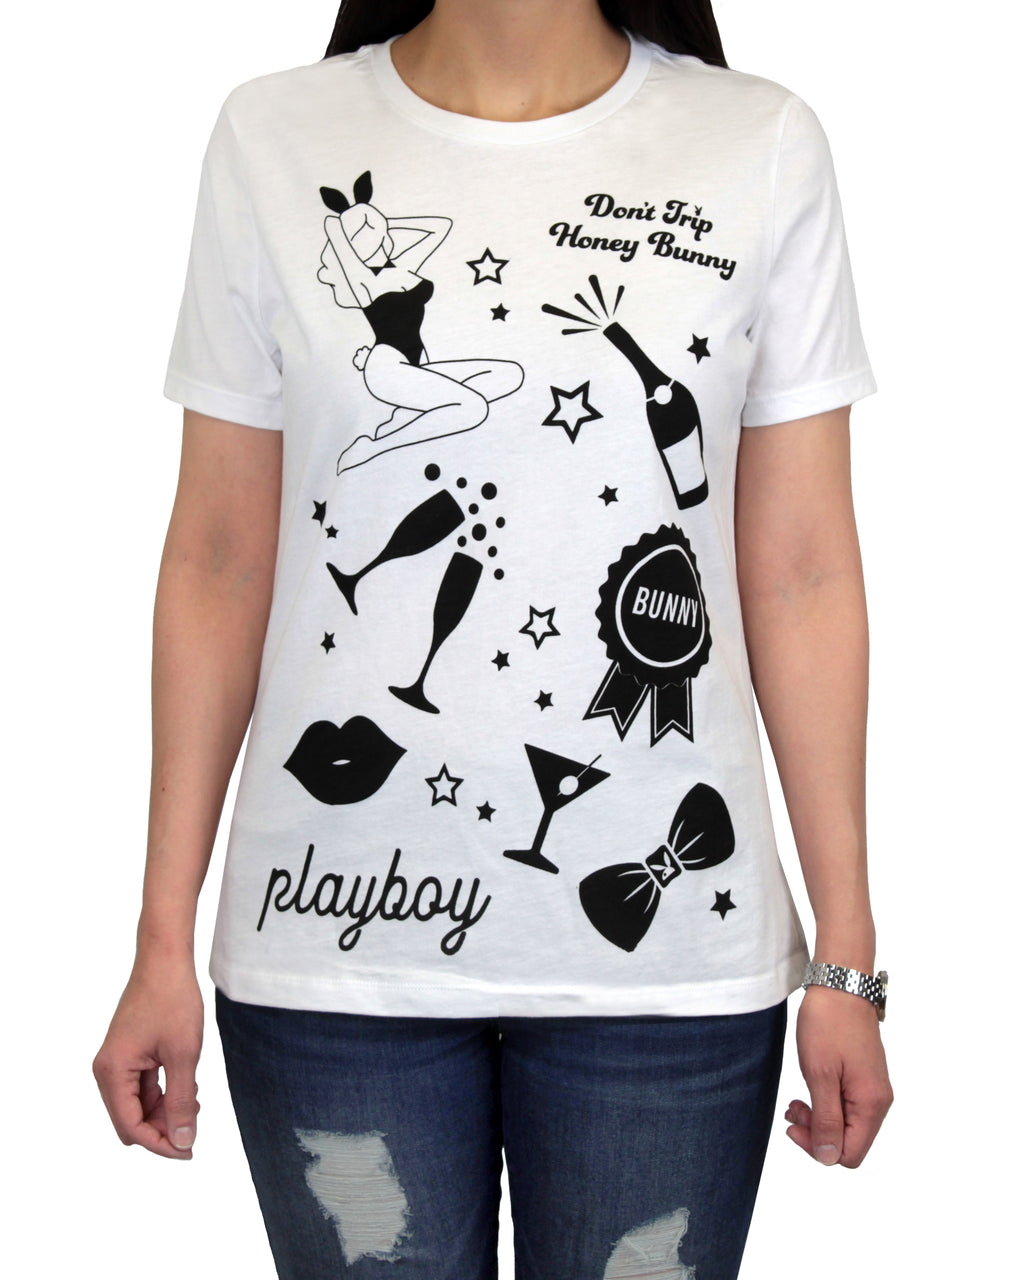 Playboy Collage Women's T-Shirt